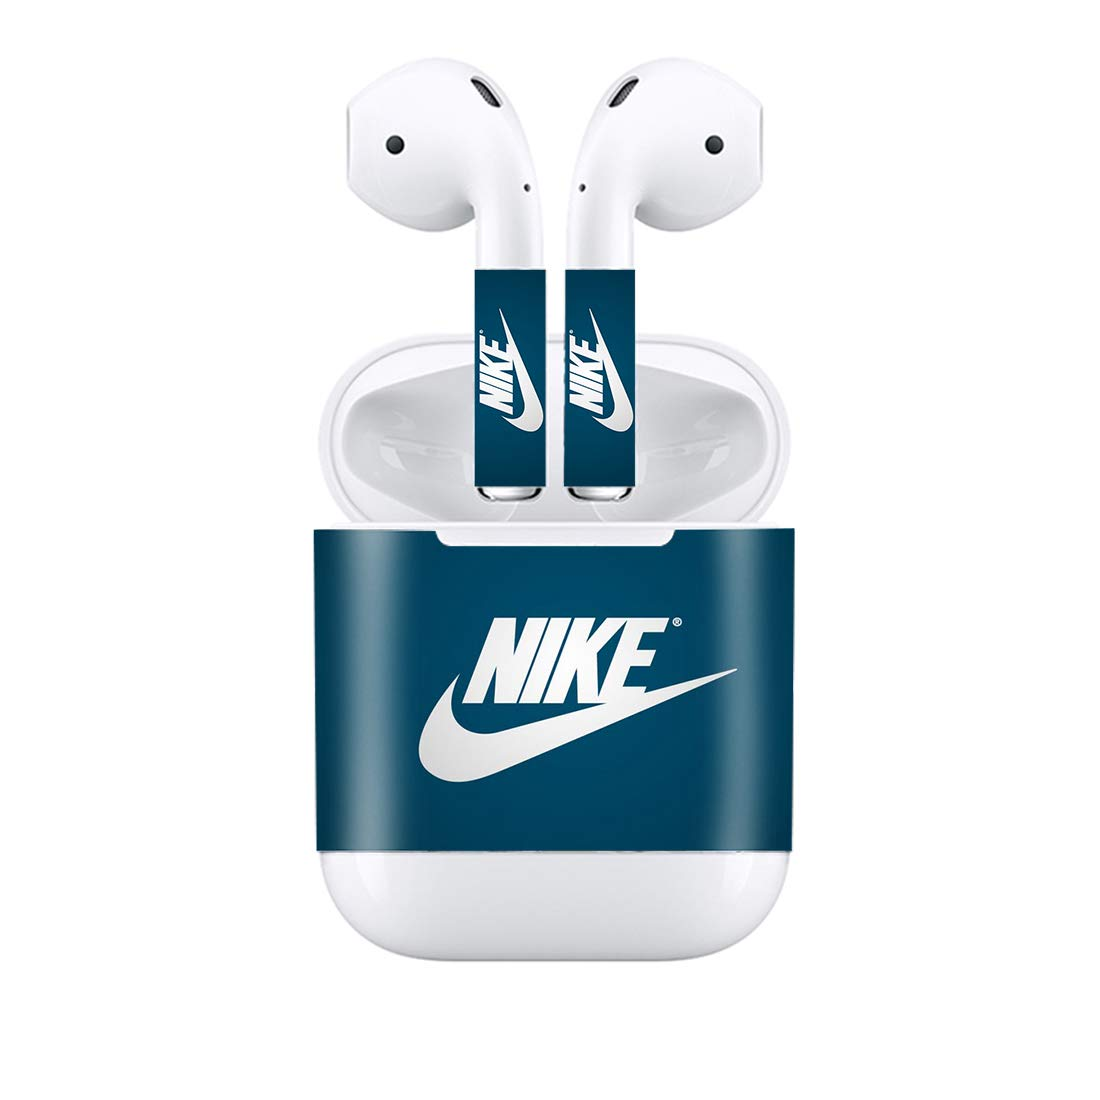 Magicskin Personalized Removable Earphone Earpiece Decals For Airpods Vinyl Skin Sticker